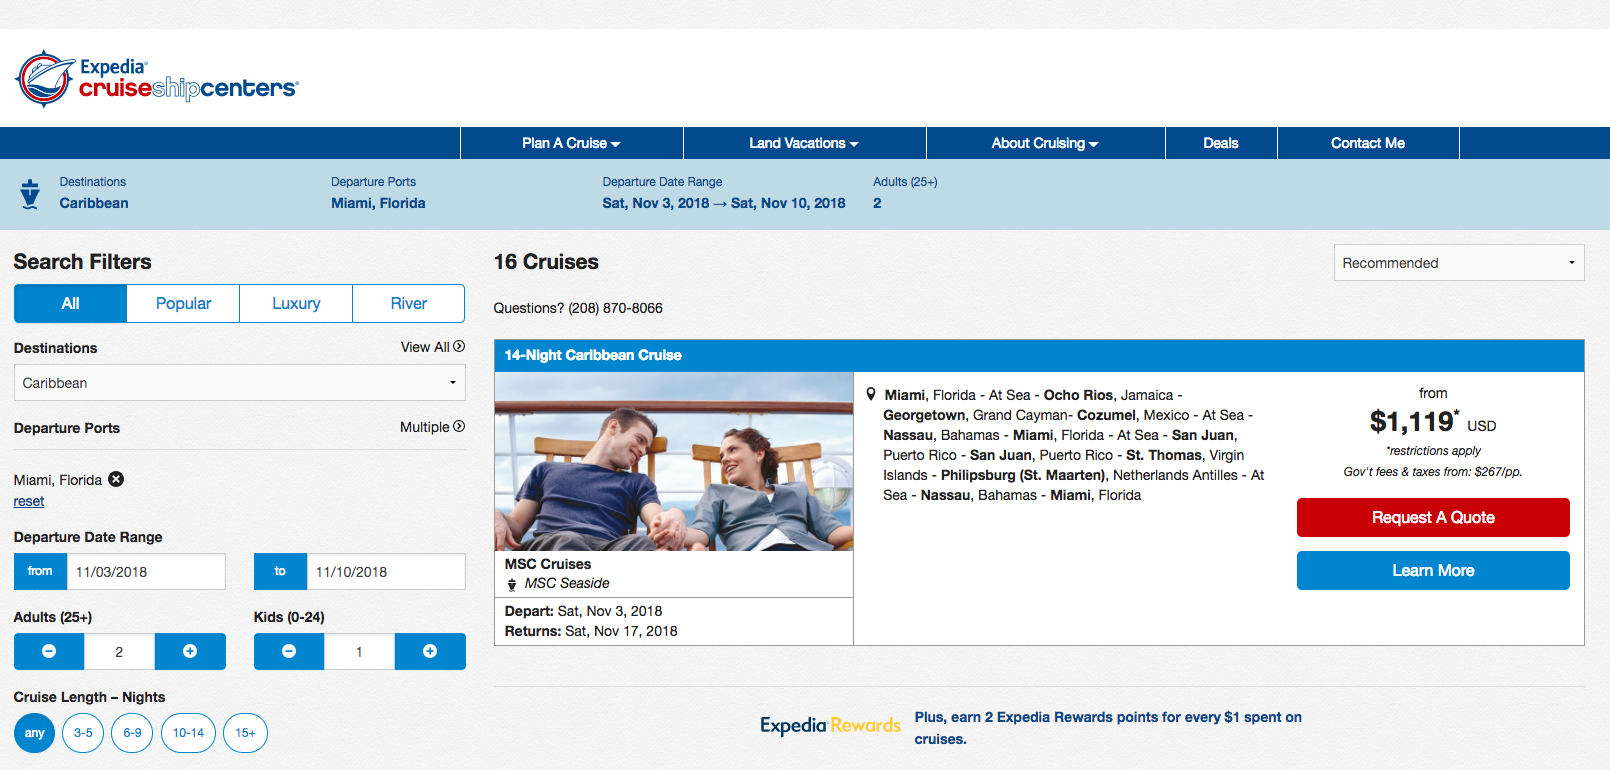 Expedia-CruiseShipCenters-Travel-Insurance-Search | AARDY.com